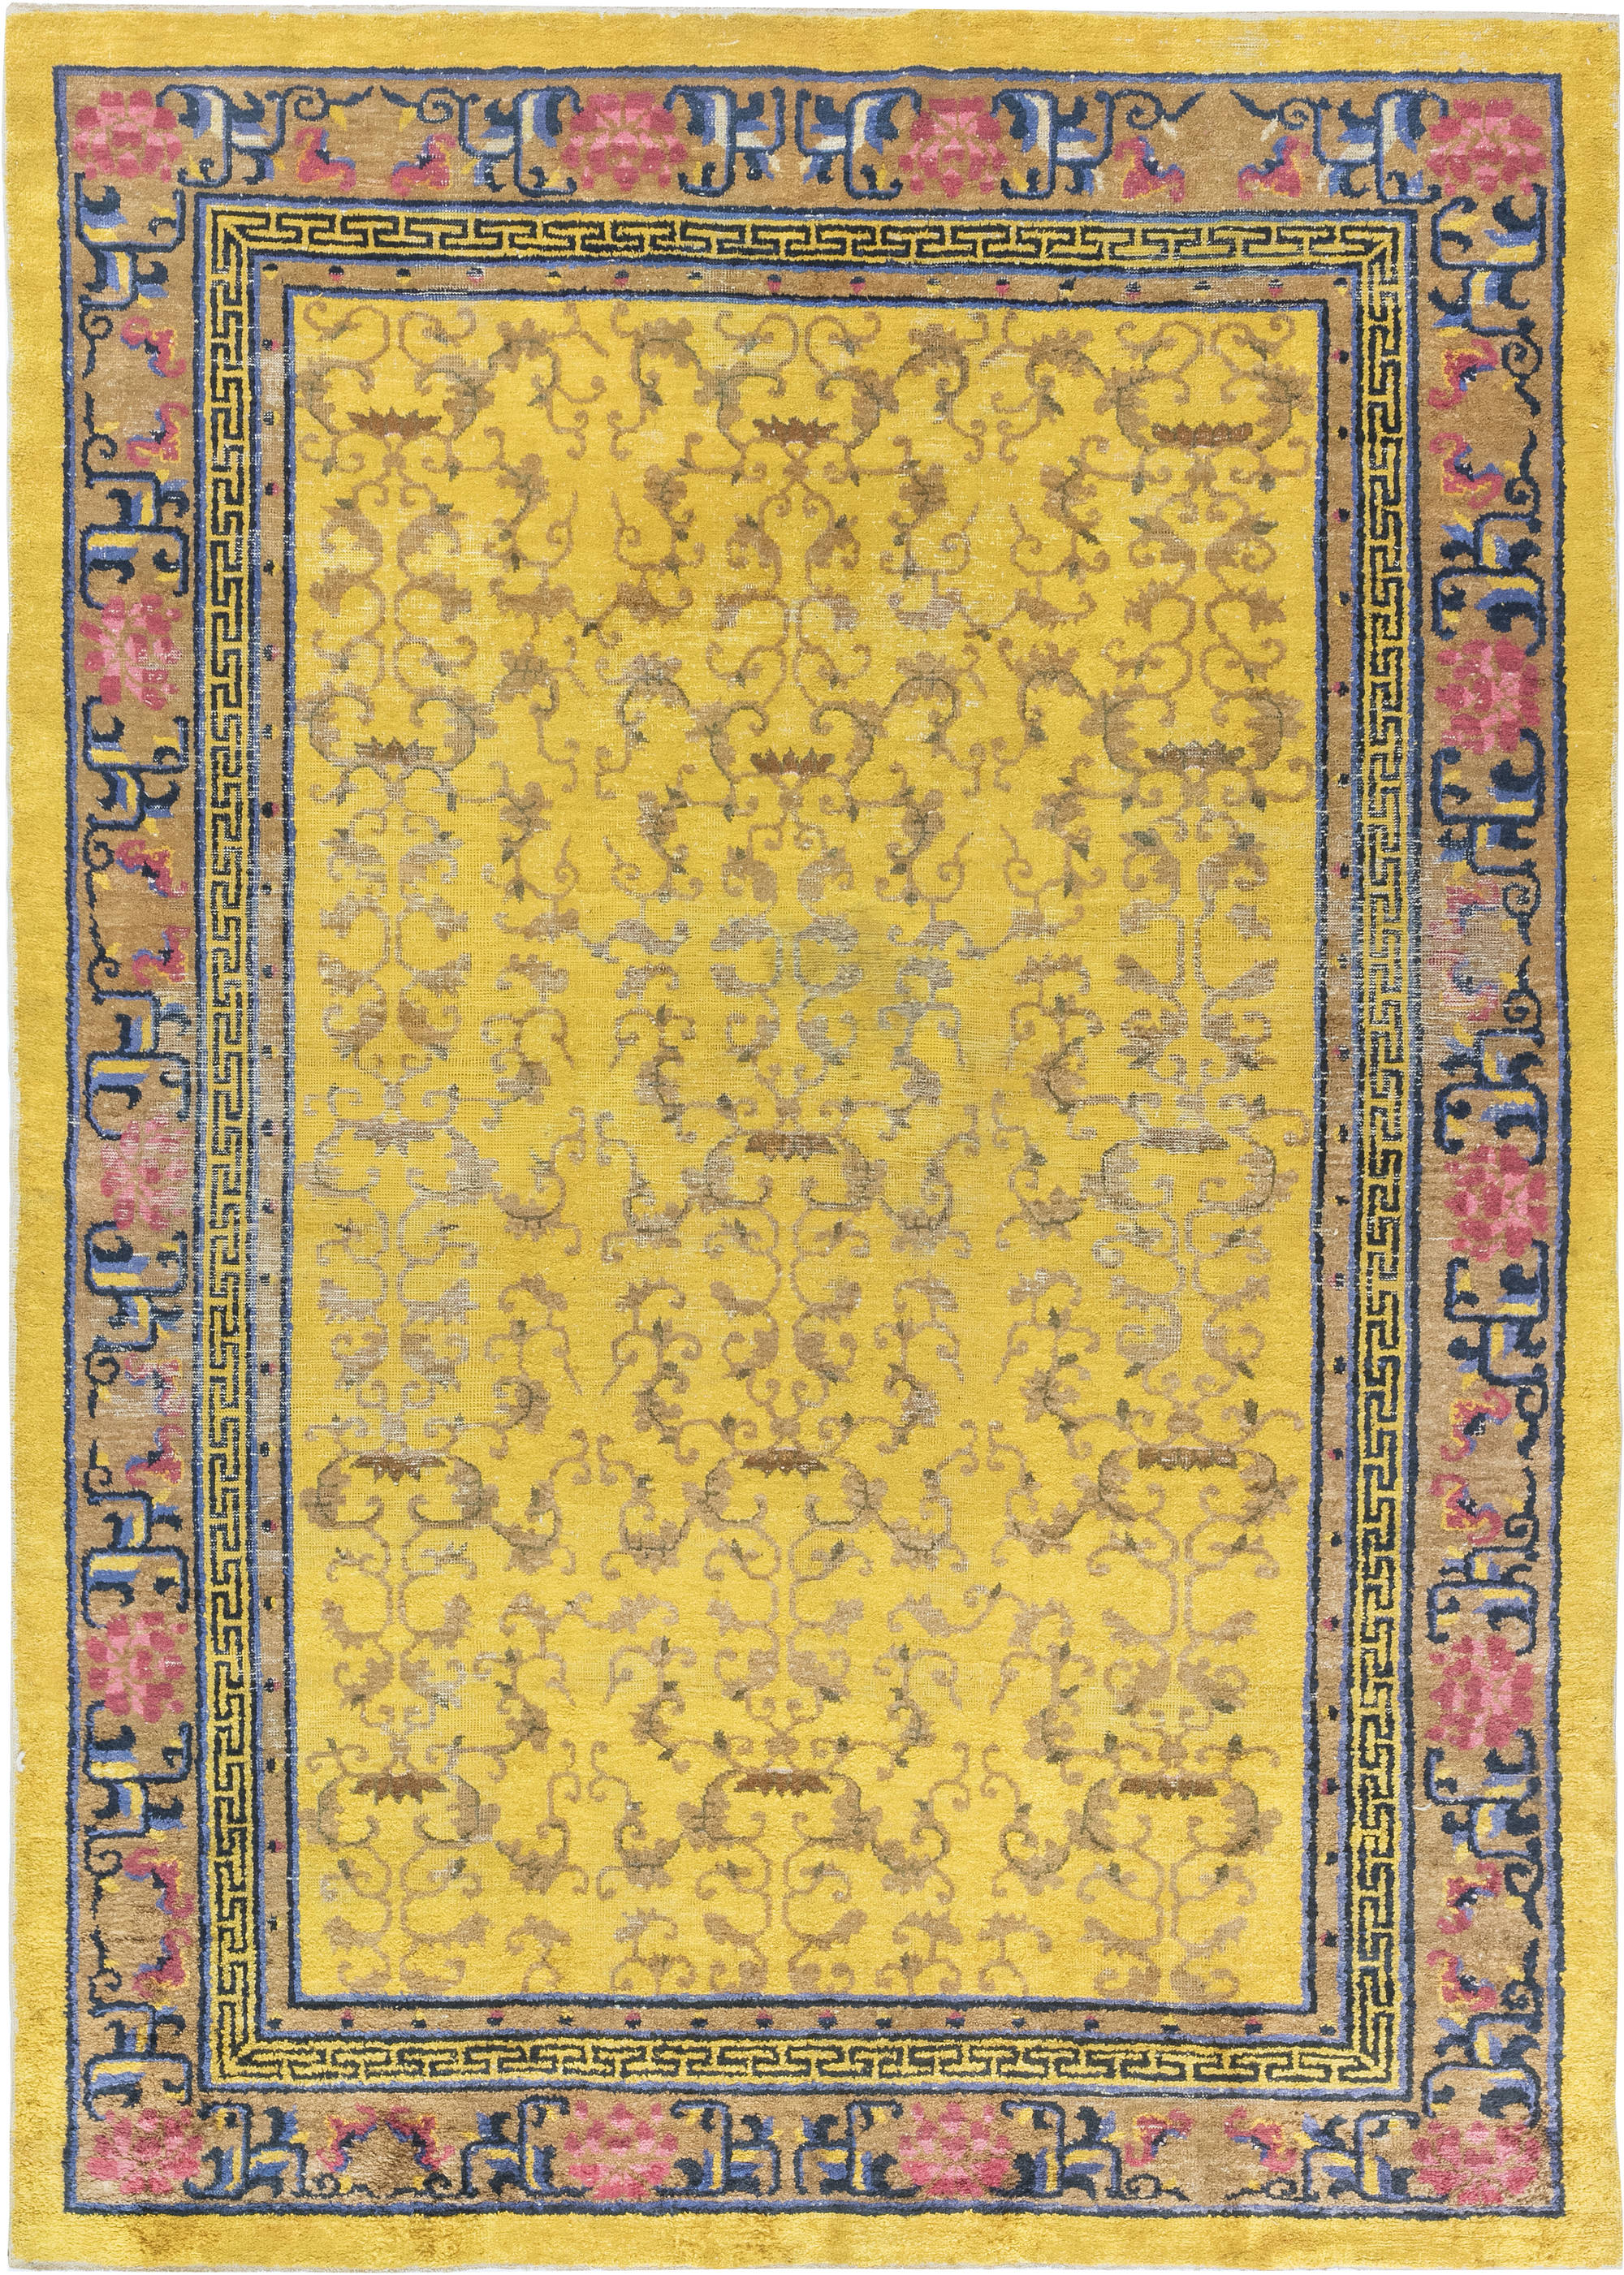 Antique Silk Chinese Rug BB6903 by DLB